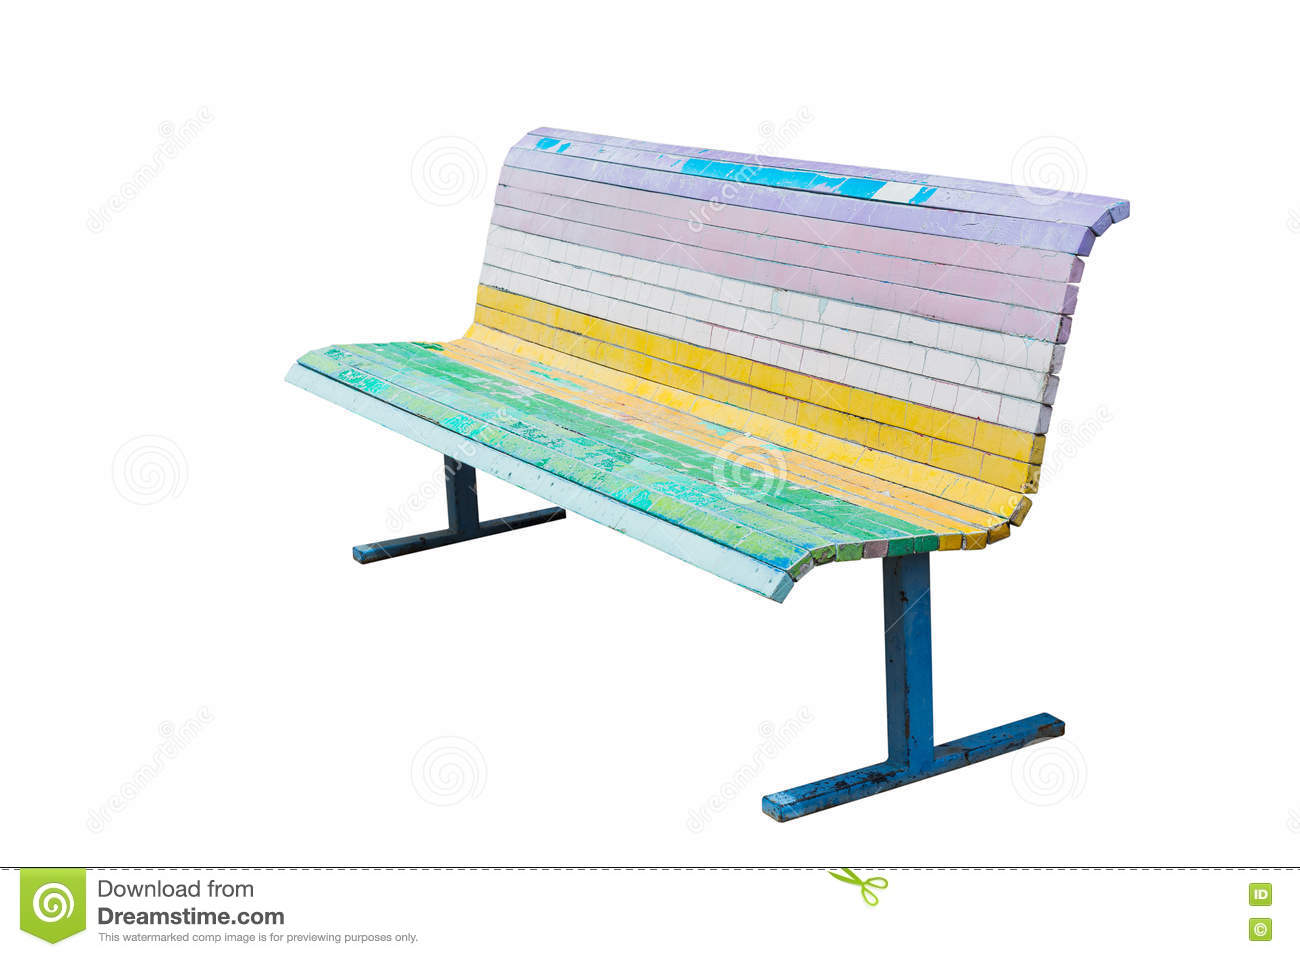 Cool Bench painted in the colors of the rainbow.